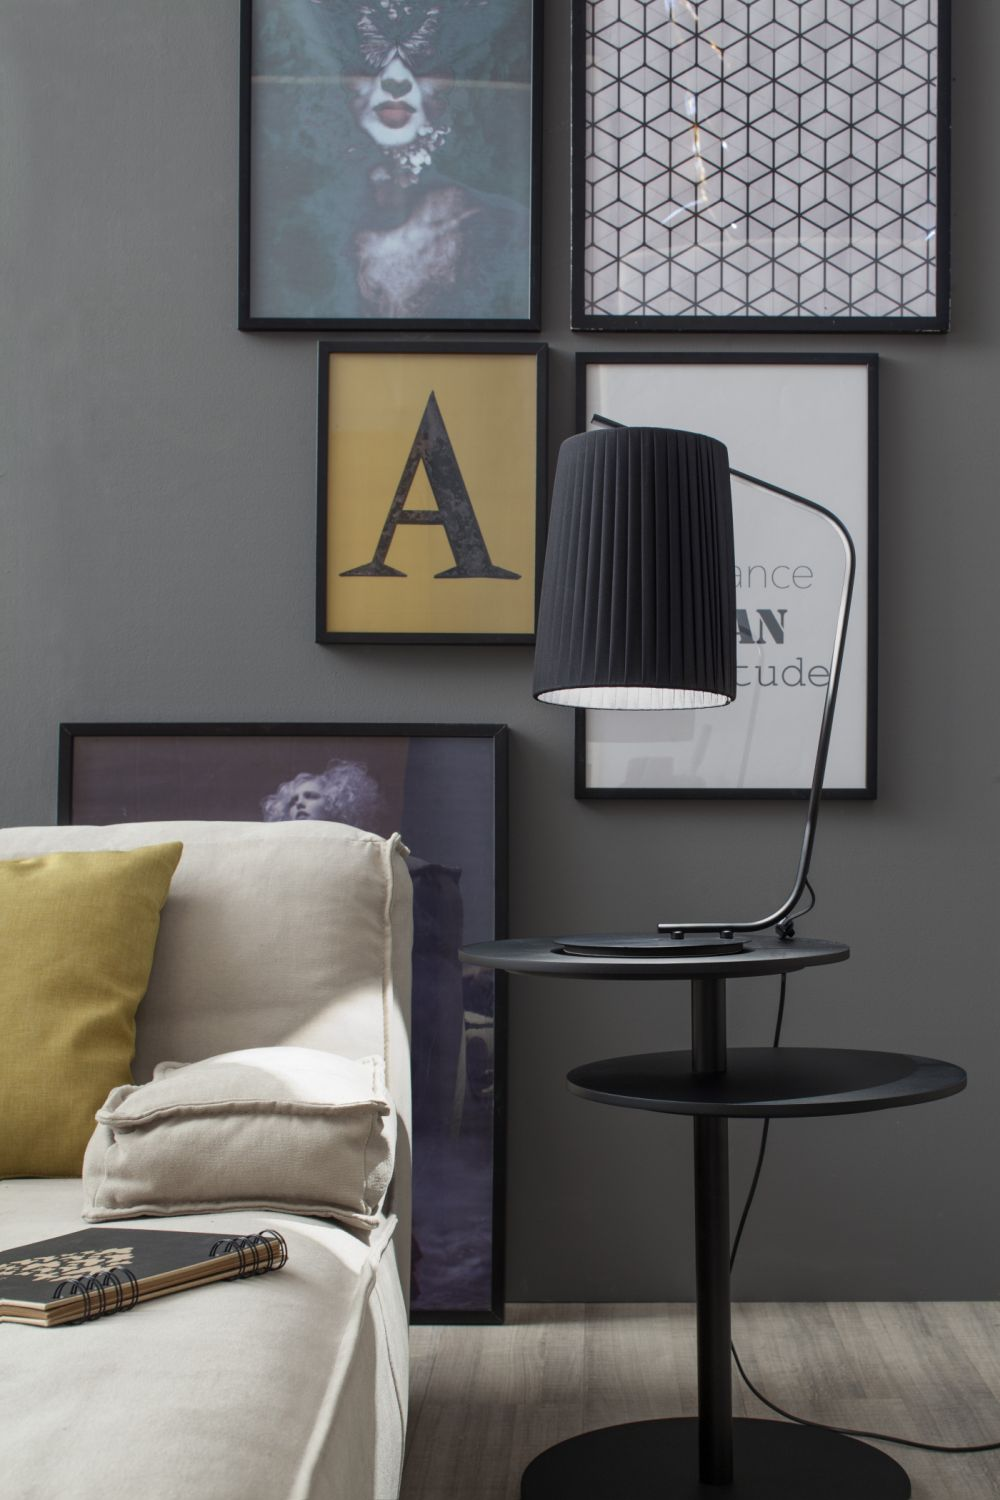 1572969273 950 bedside reading lamps with edgy and quirky designs - Bedside Reading Lamps With Edgy and Quirky Designs